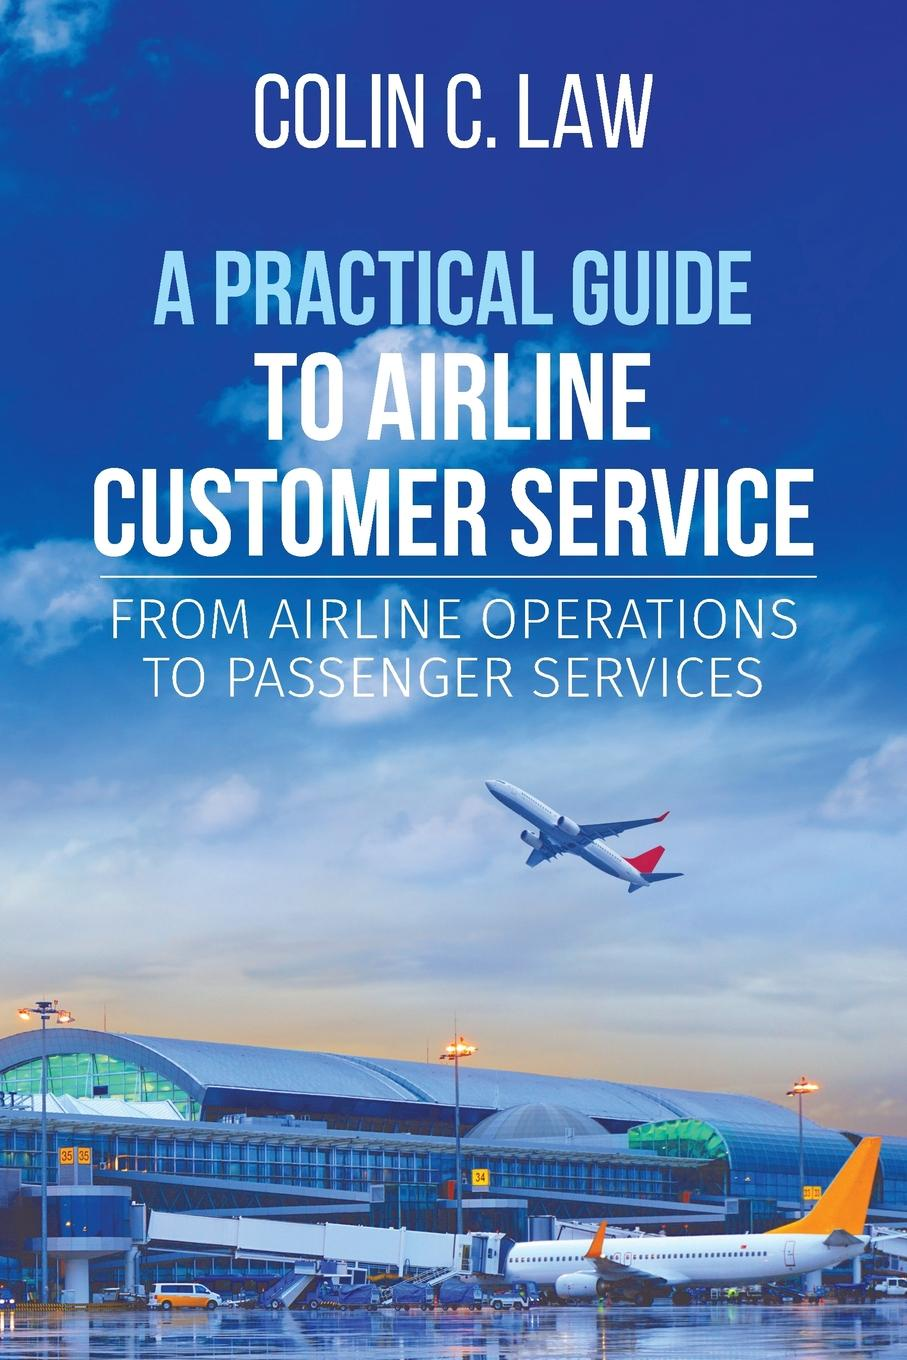 Colin C. Law A Practical Guide to Airline Customer Service. From Airline Operations to Passenger Services kyle gabhart service oriented architecture field guide for executives